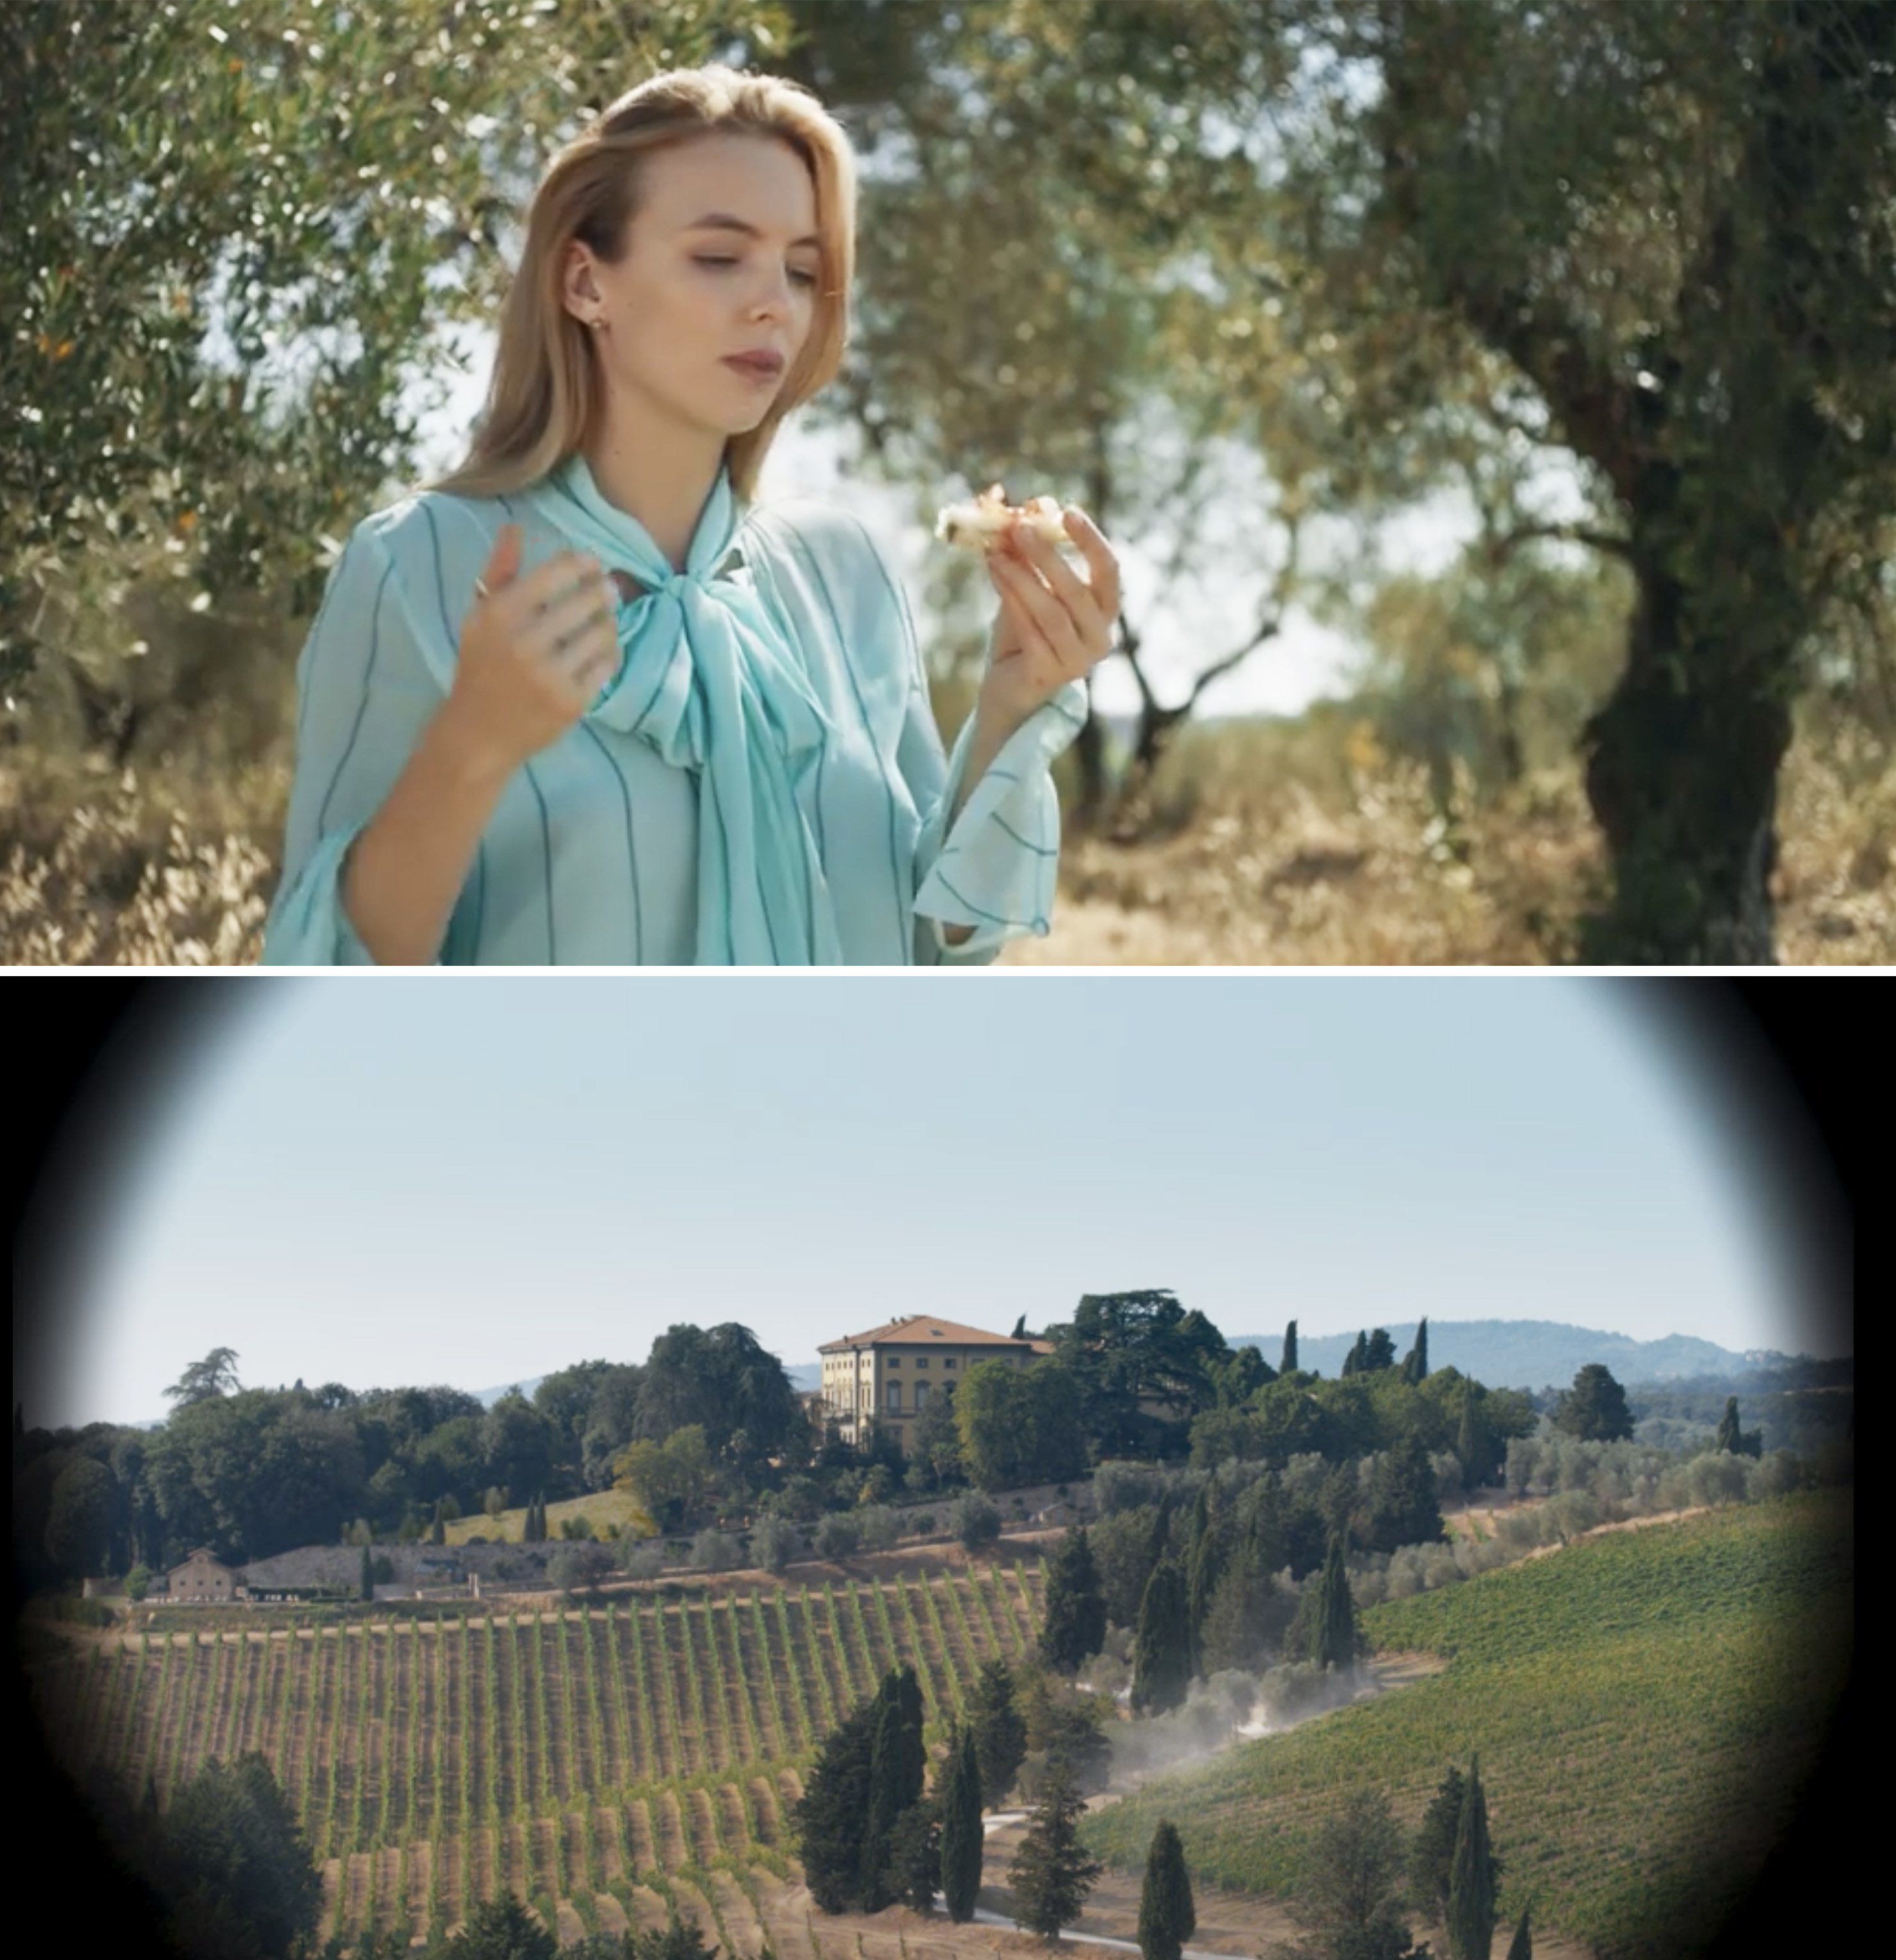 Villanelle standing outside a gorgeous vineyard in Tuscany